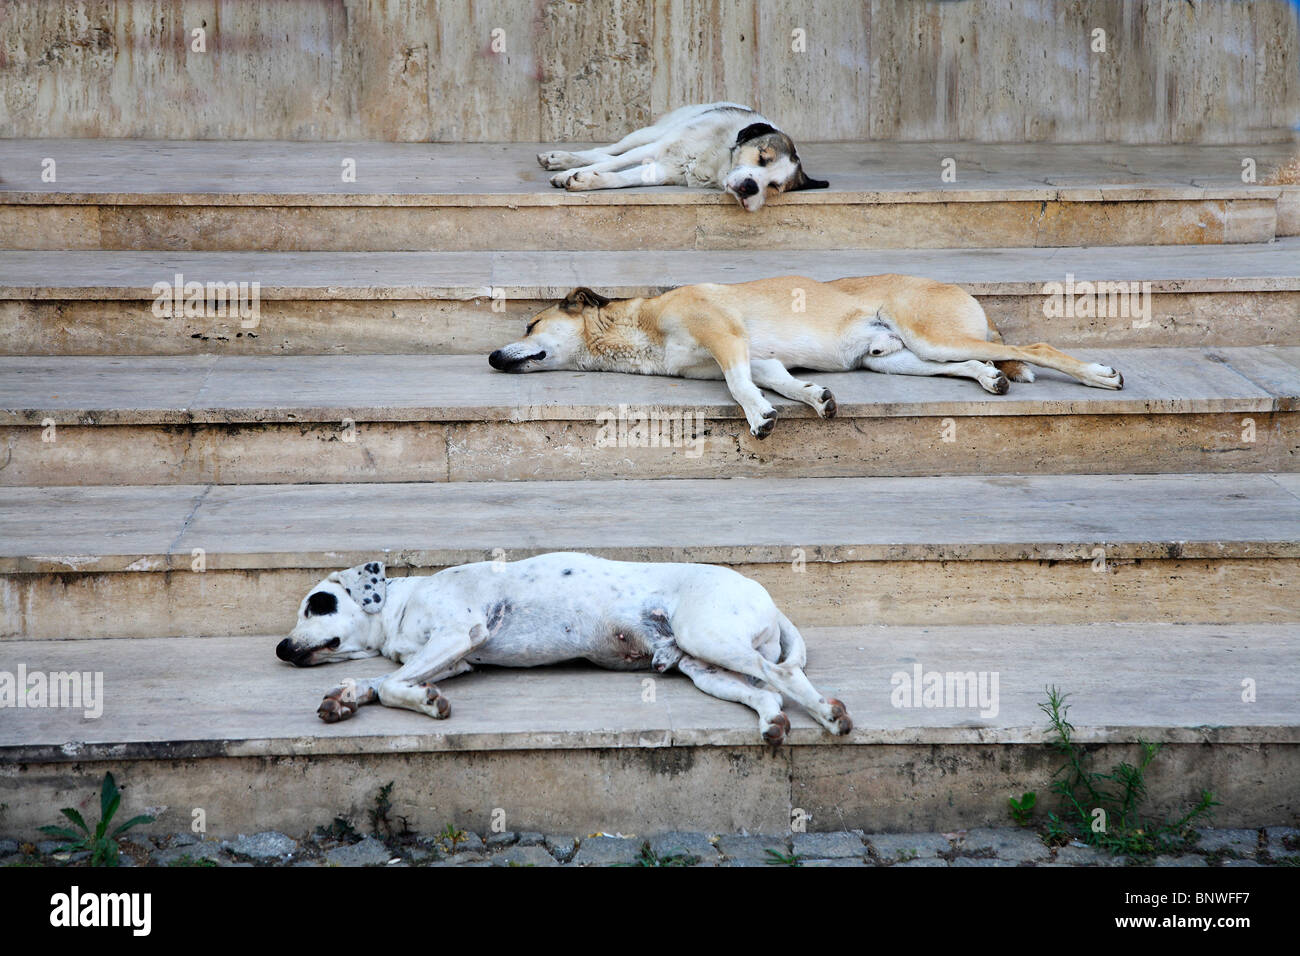 dogs sleeping on the building steps sheltering from hot sun - Stock Image